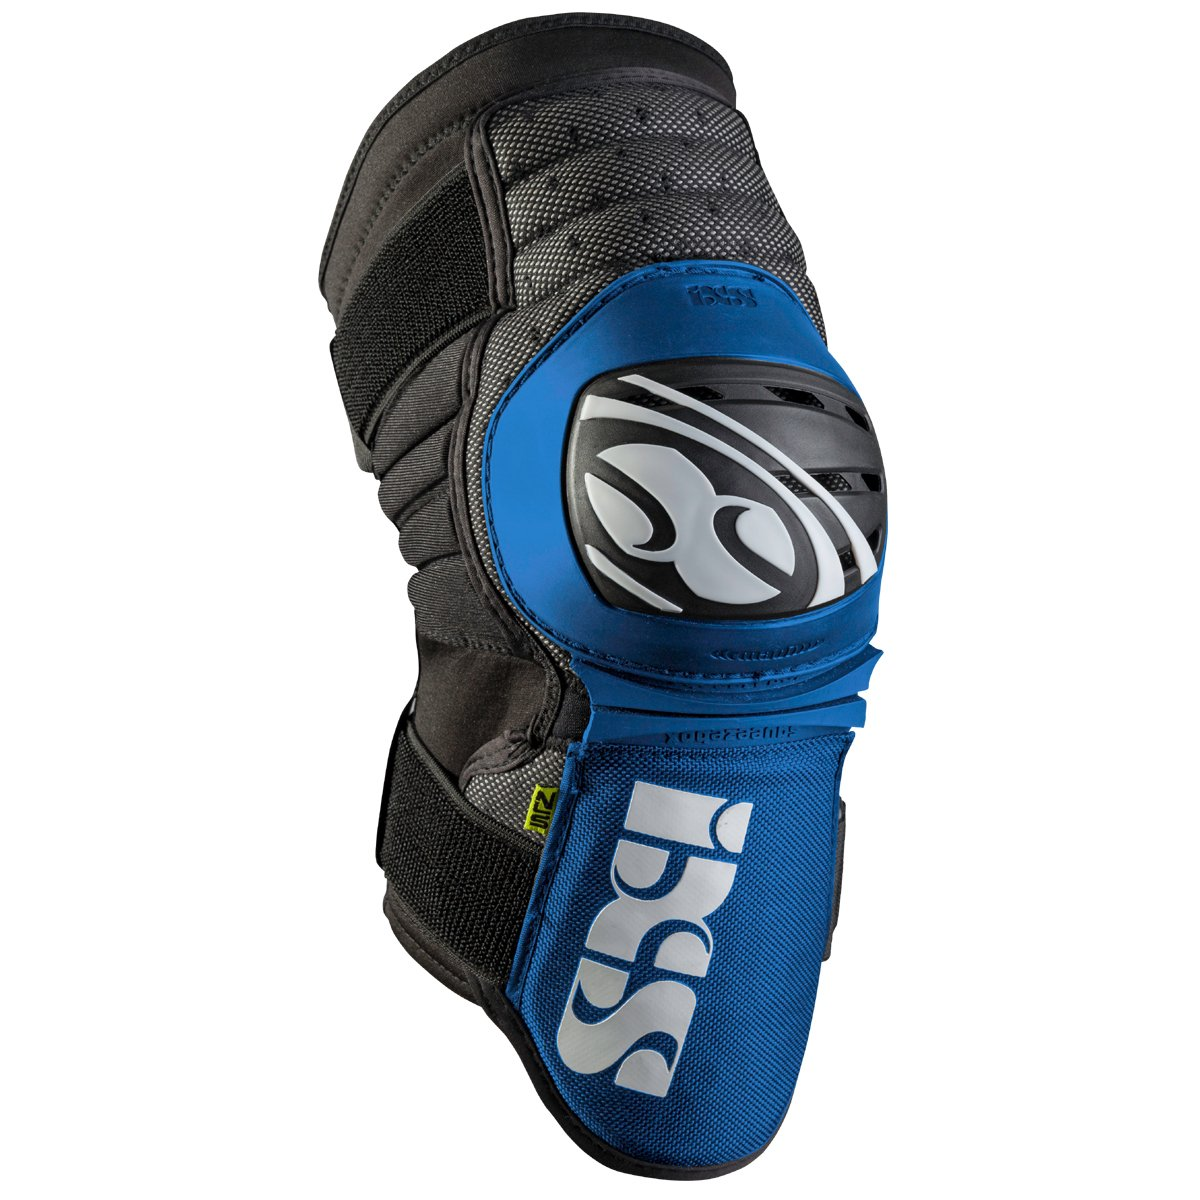 IXS Dagger Knee/Shin Guard - 482-510-3605 (Blue (D'Claw) - M) by IXS